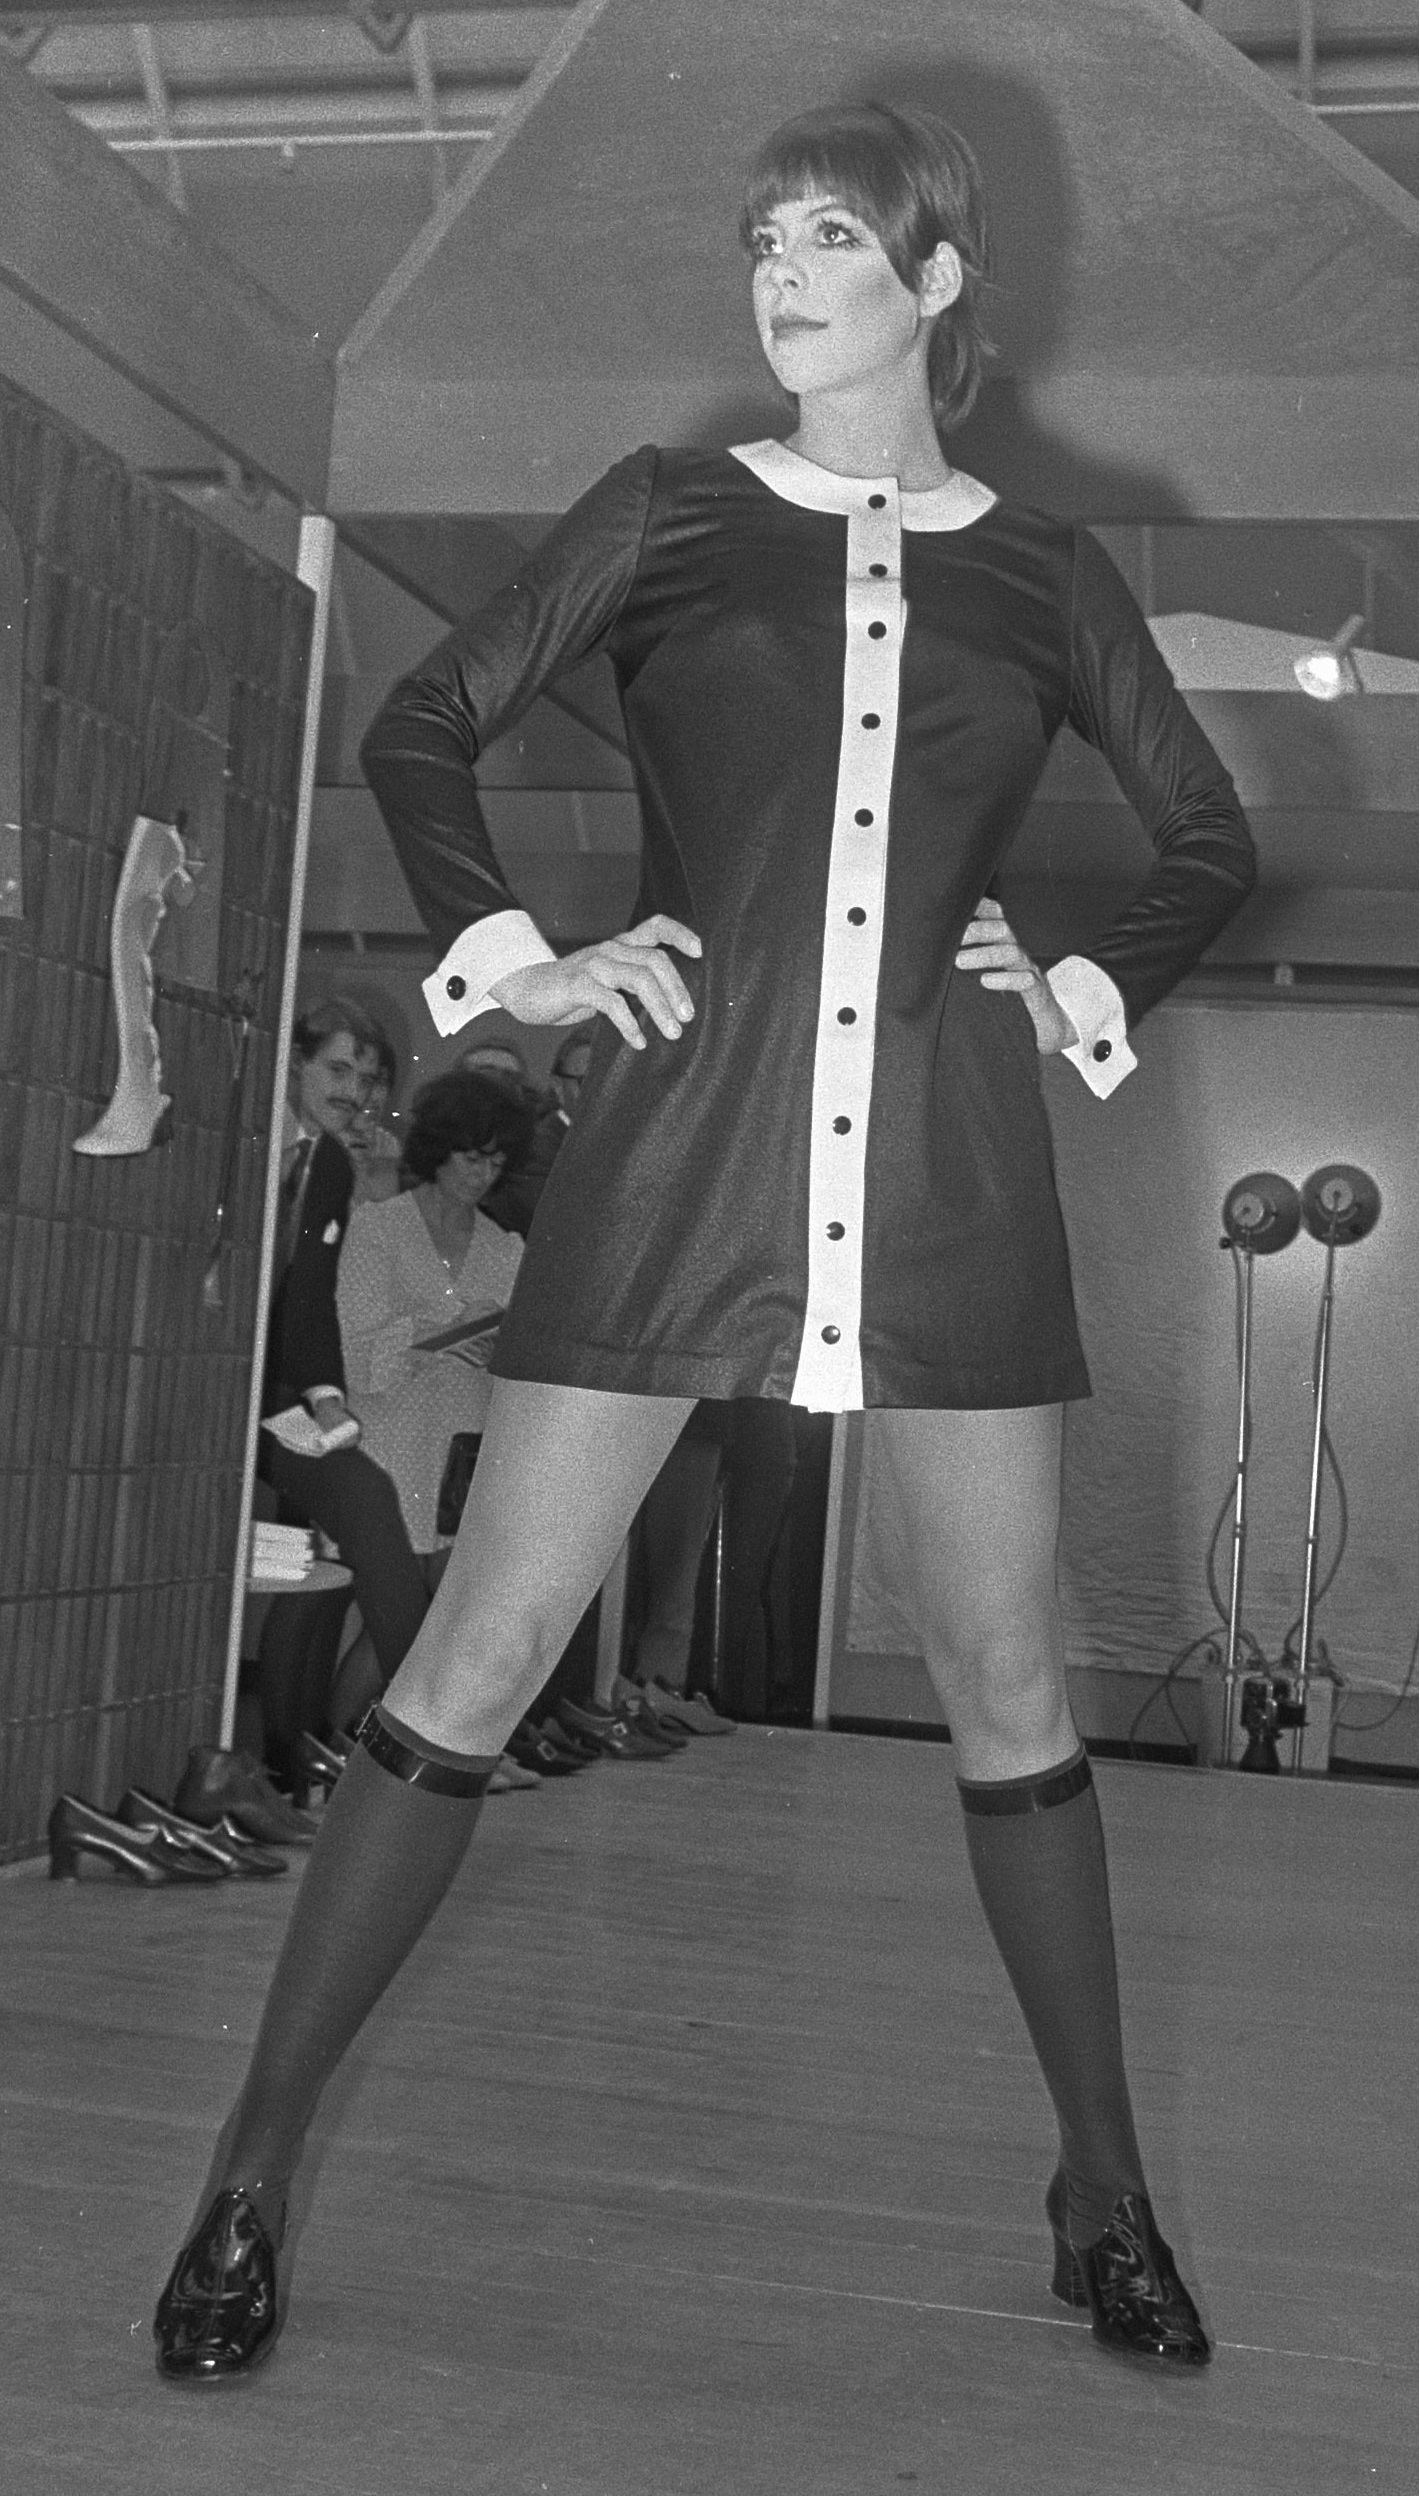 Diabolo minidress at Mary Quant fashion show, Utrecht, 24 March 1969 crop.jpg